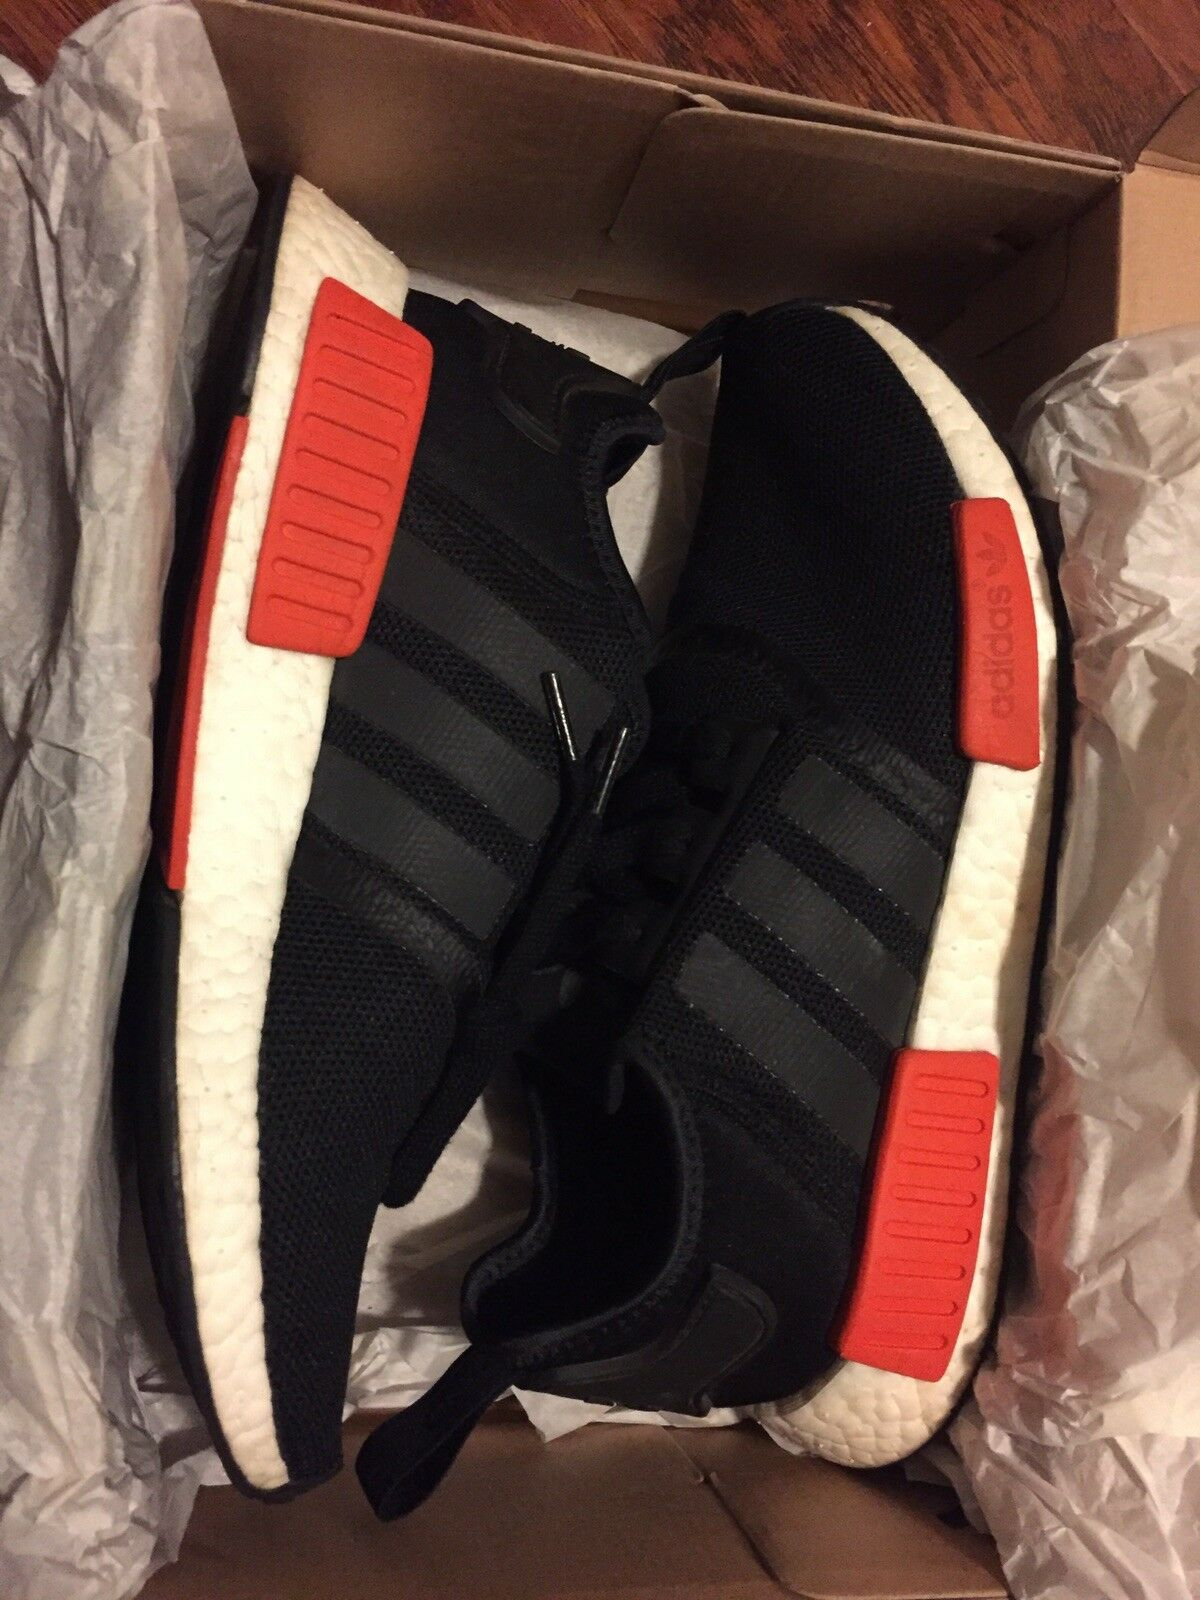 US sz 9 Men's Adidas NMD NMD NMD R1 Black And Red (well Cleaned) 61a41a